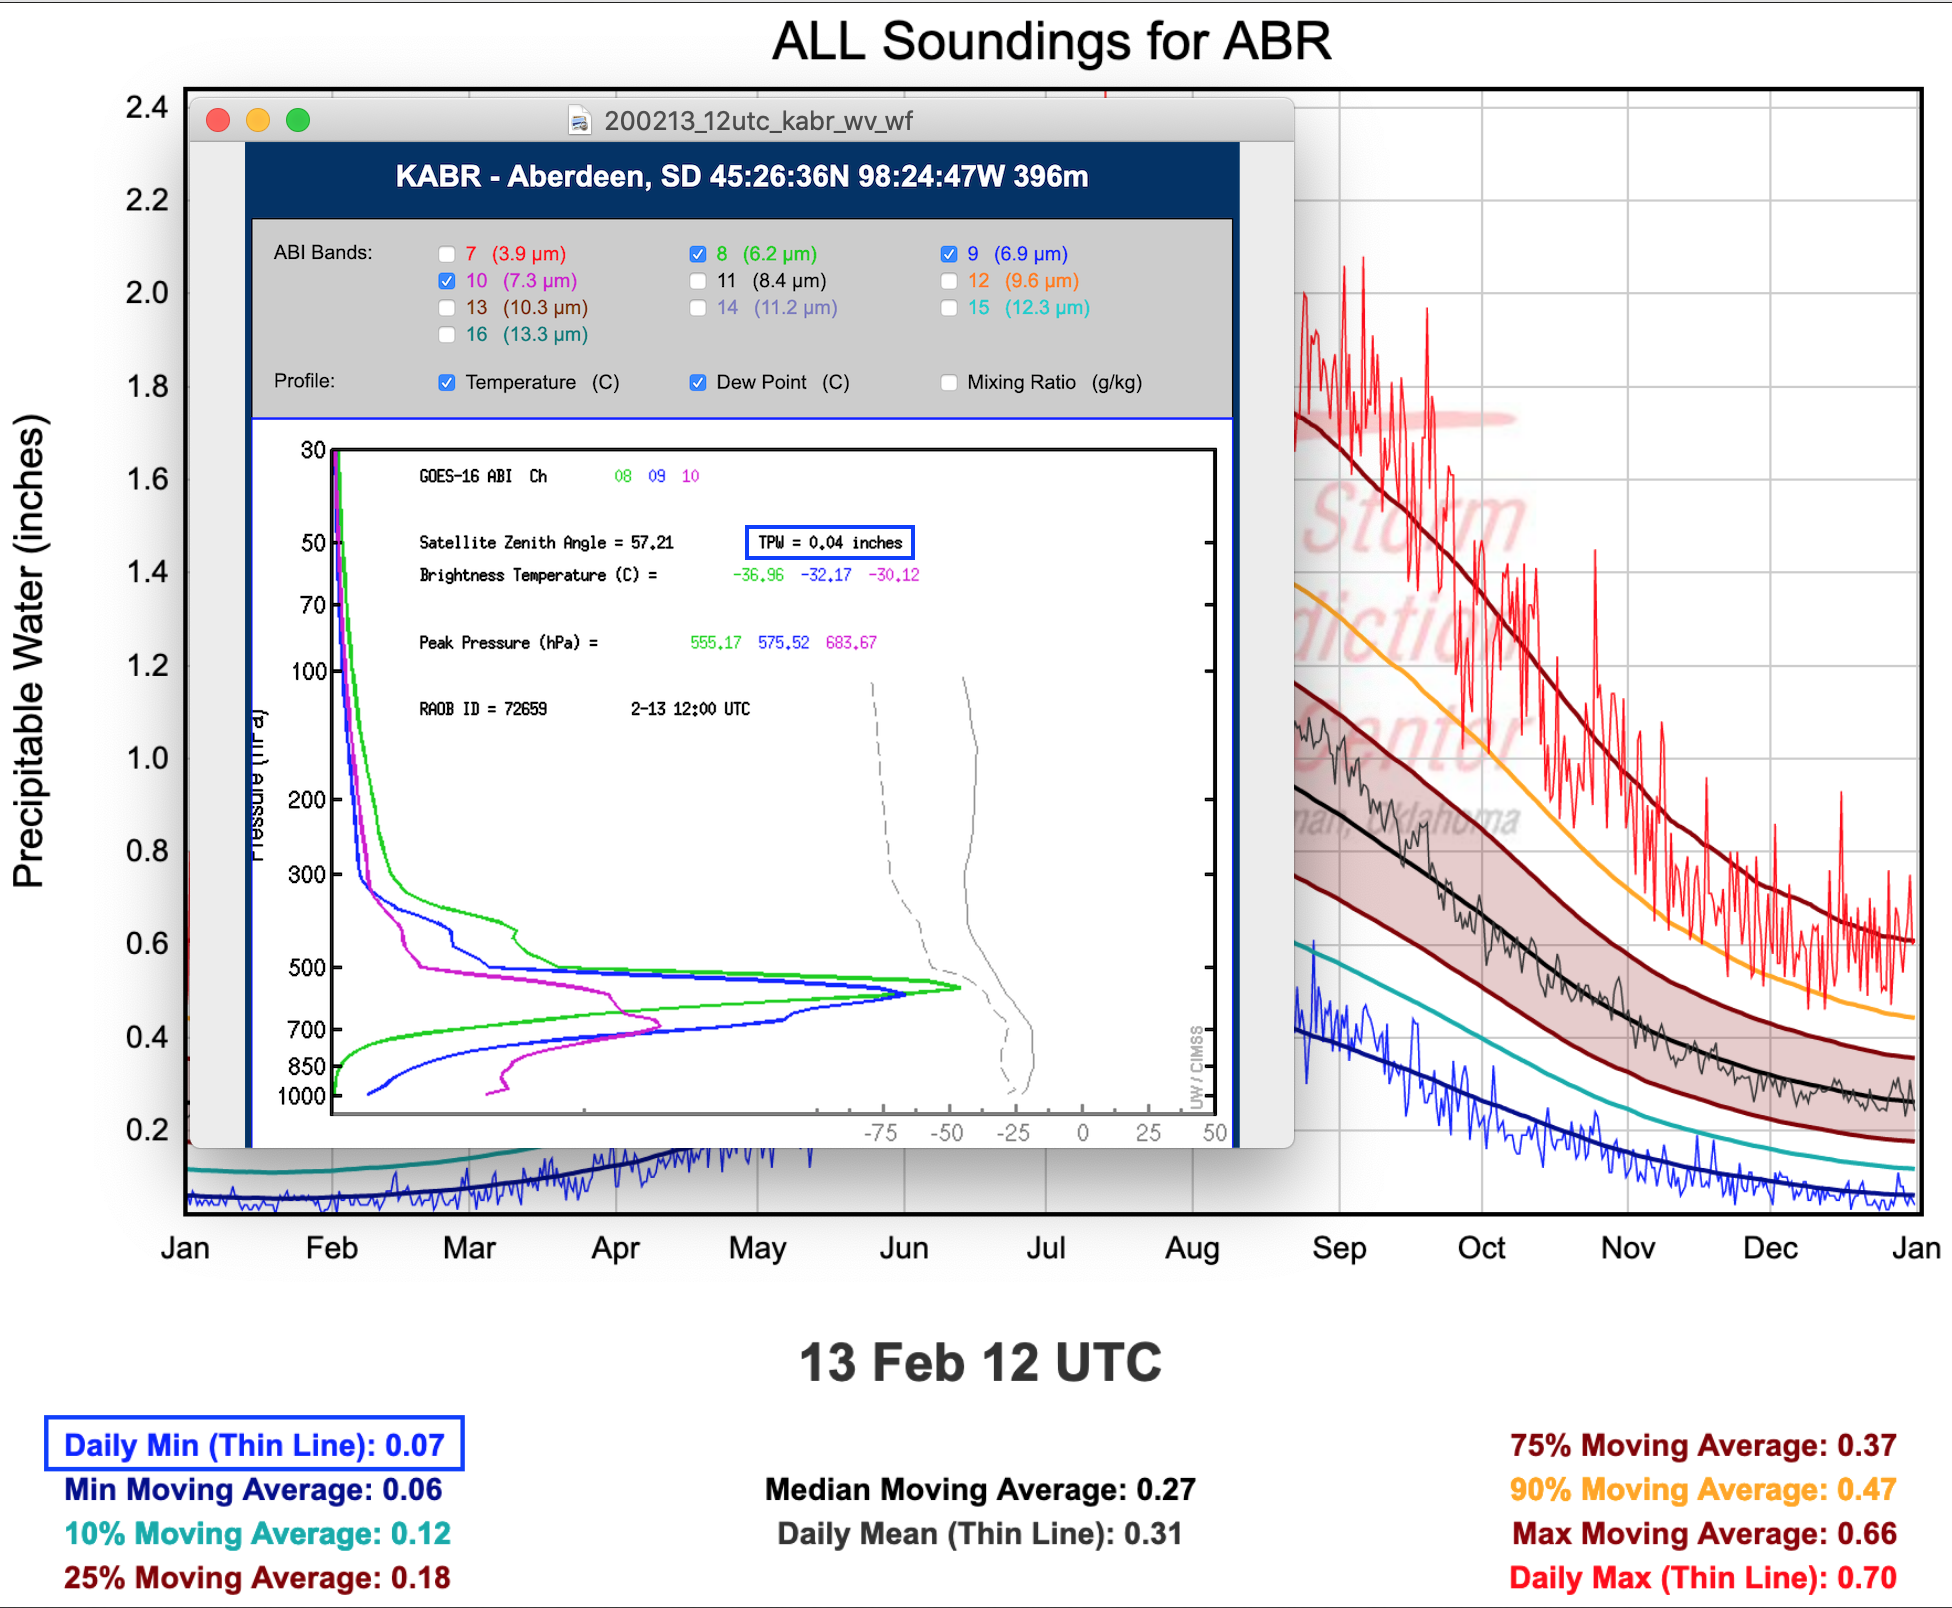 13 February / 12 UTC TPW climatology and water vapor weighting functions for Aberdeen, SD [click to enlarge]